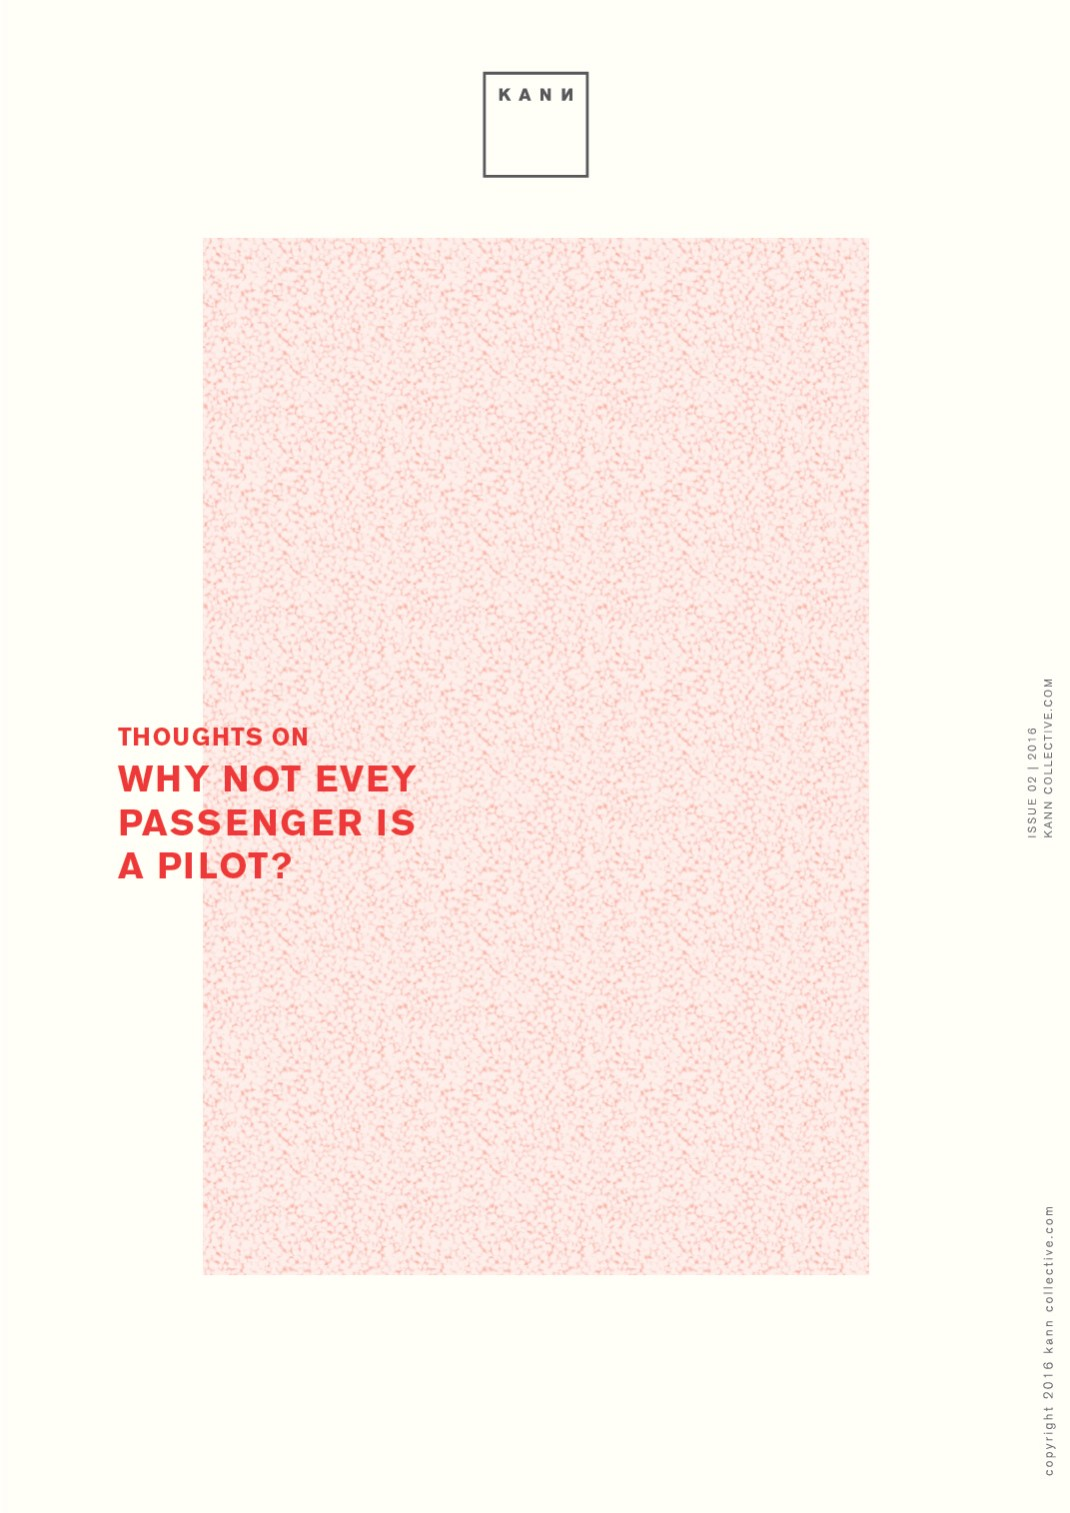 Thoughts-on-why-not-every-passenger-is-a-pilot